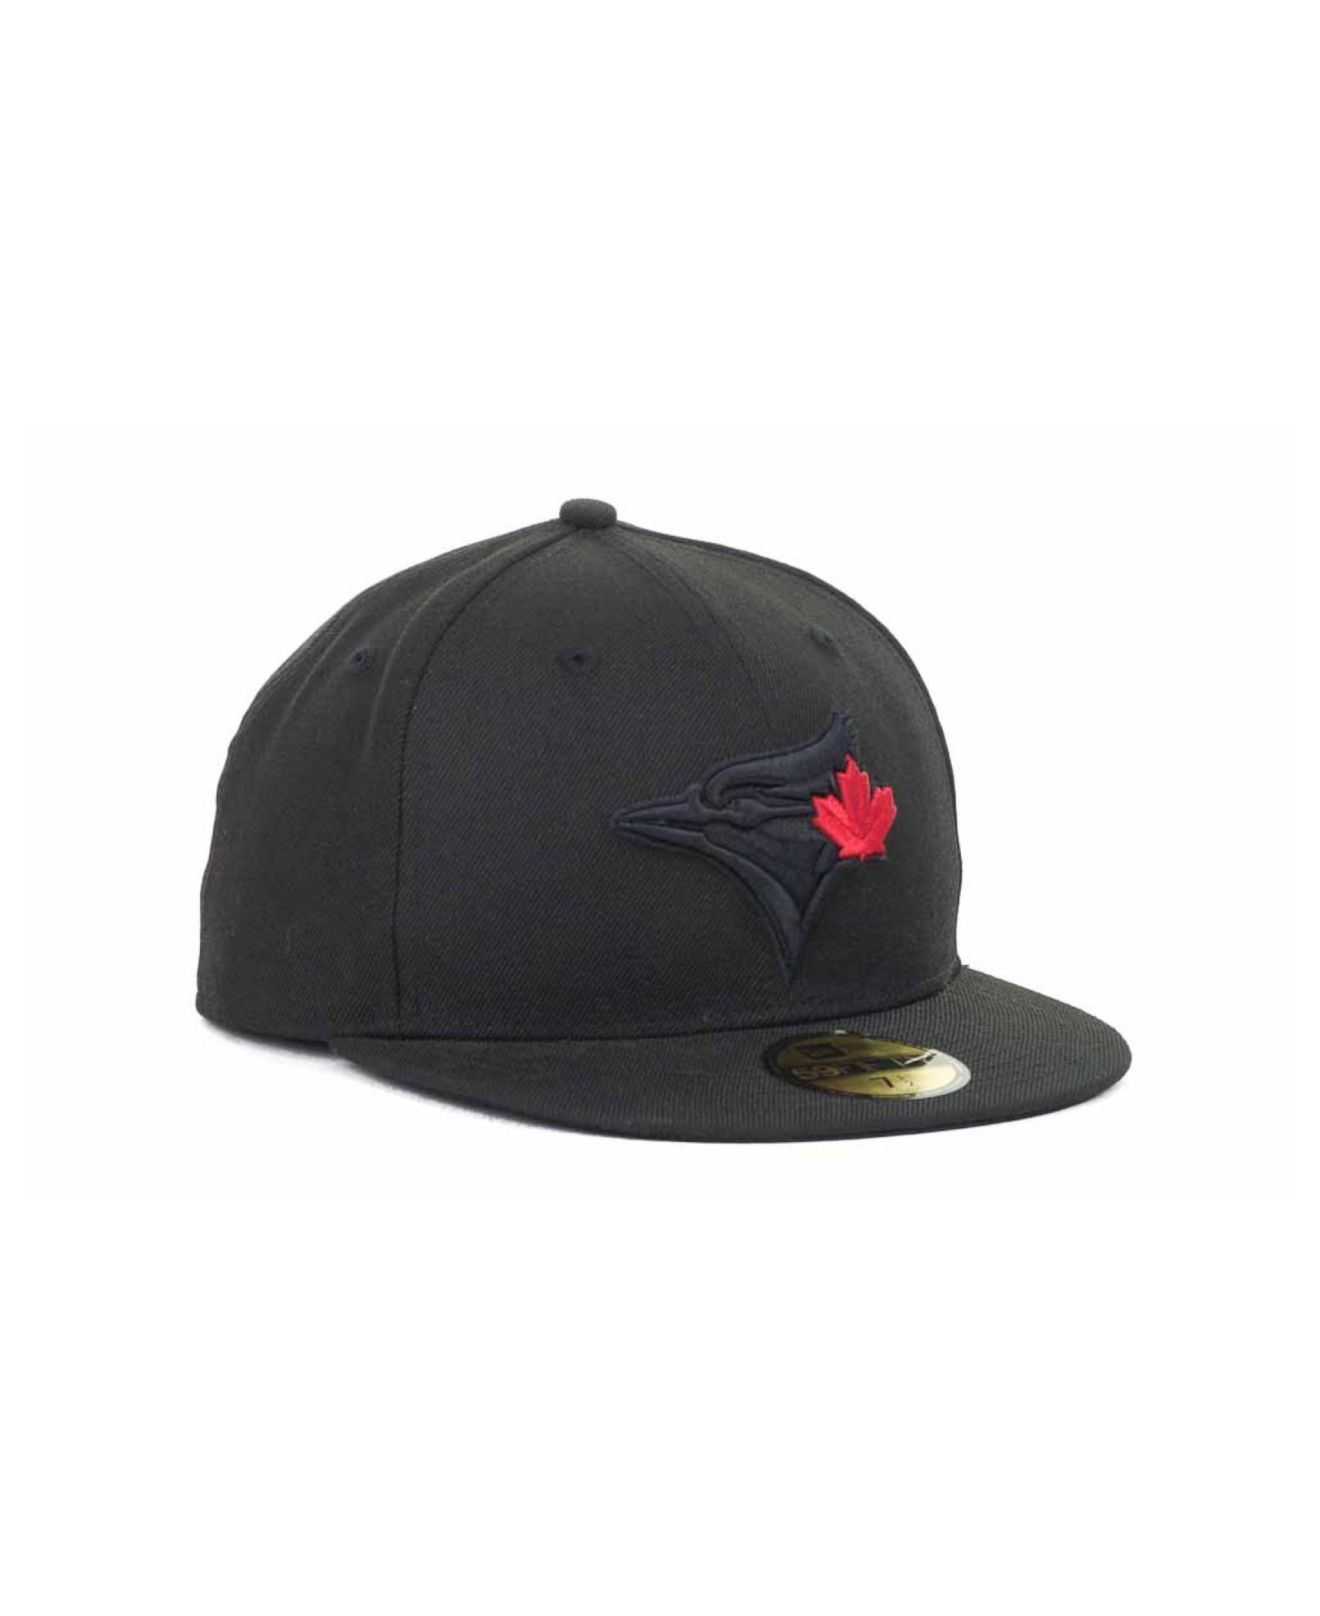 online store fa918 23ee0 release date toronto blue jays new era mlb white and black ...